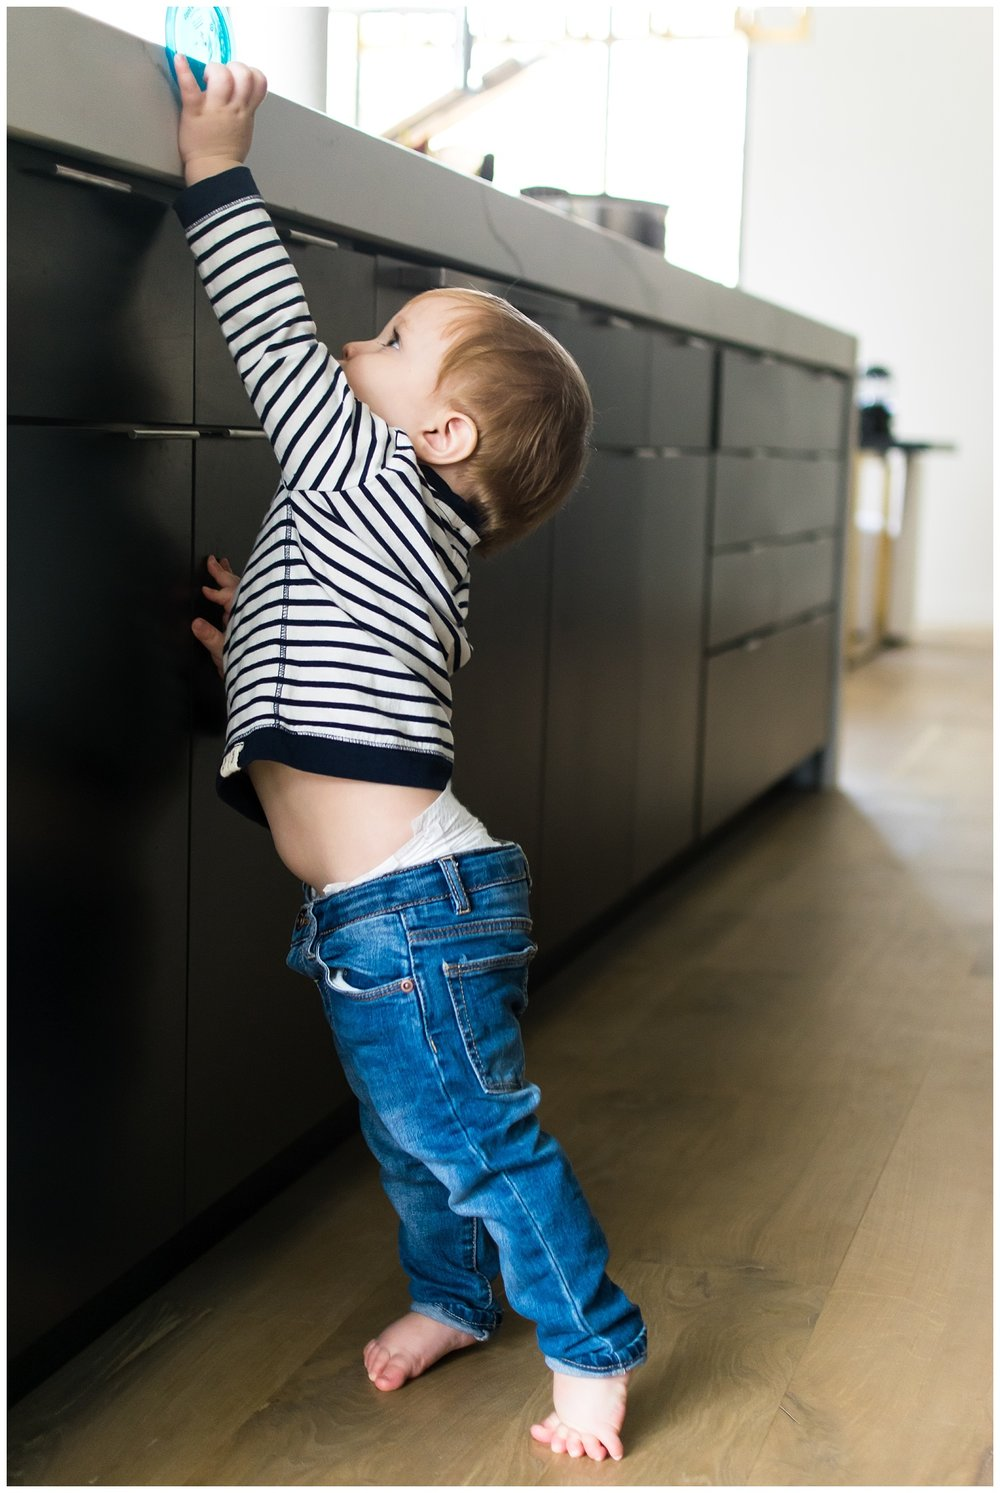 this is an image of a young child standing on his tippy toes trying to reach for his cup. the image was taken during an in home lifestyle session in atlanta georgia.